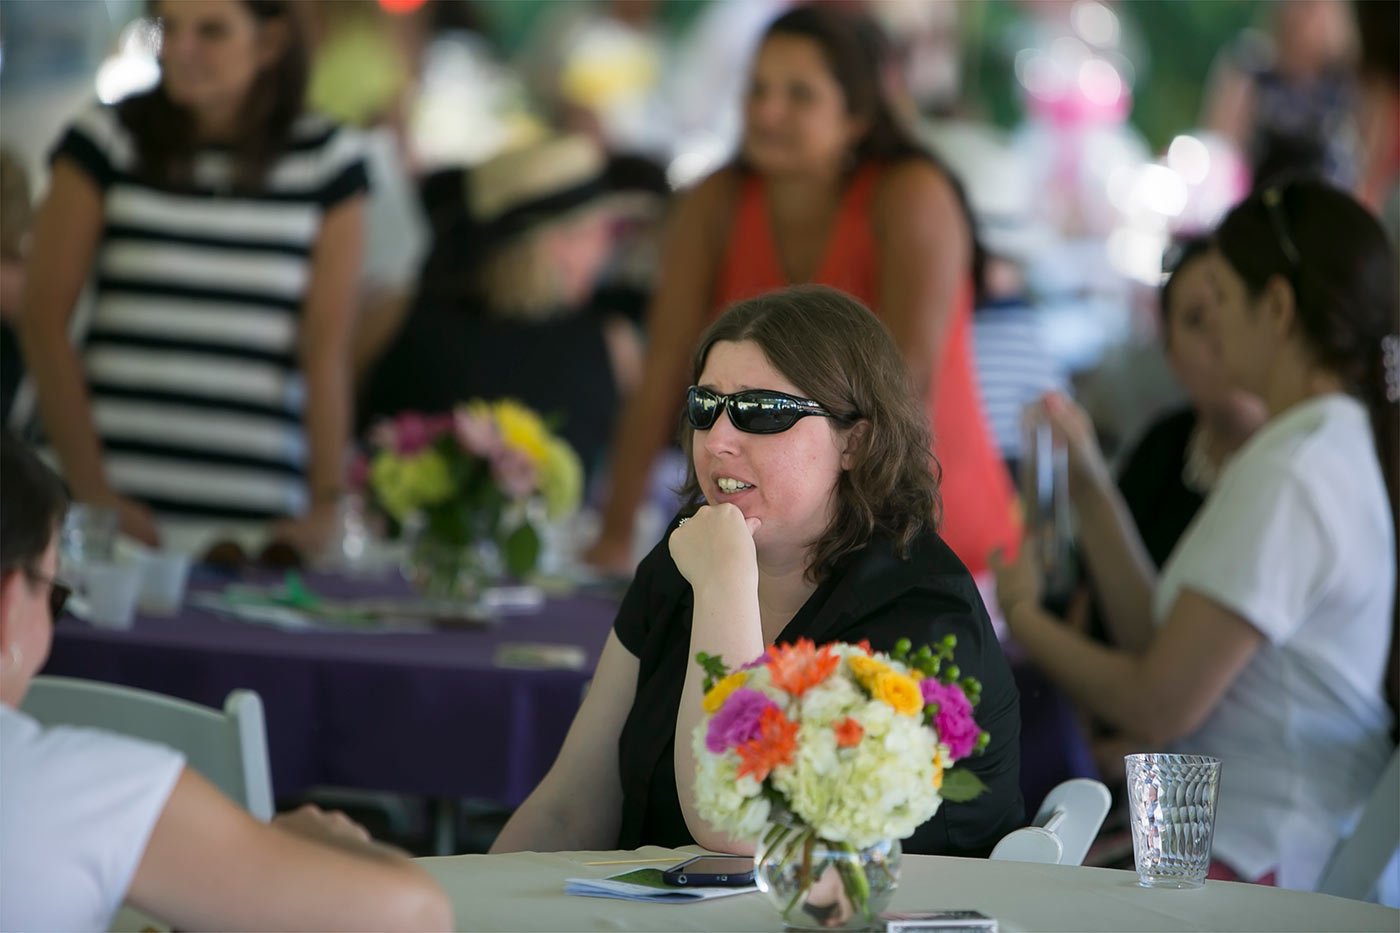 woman in black and sunglasses at table